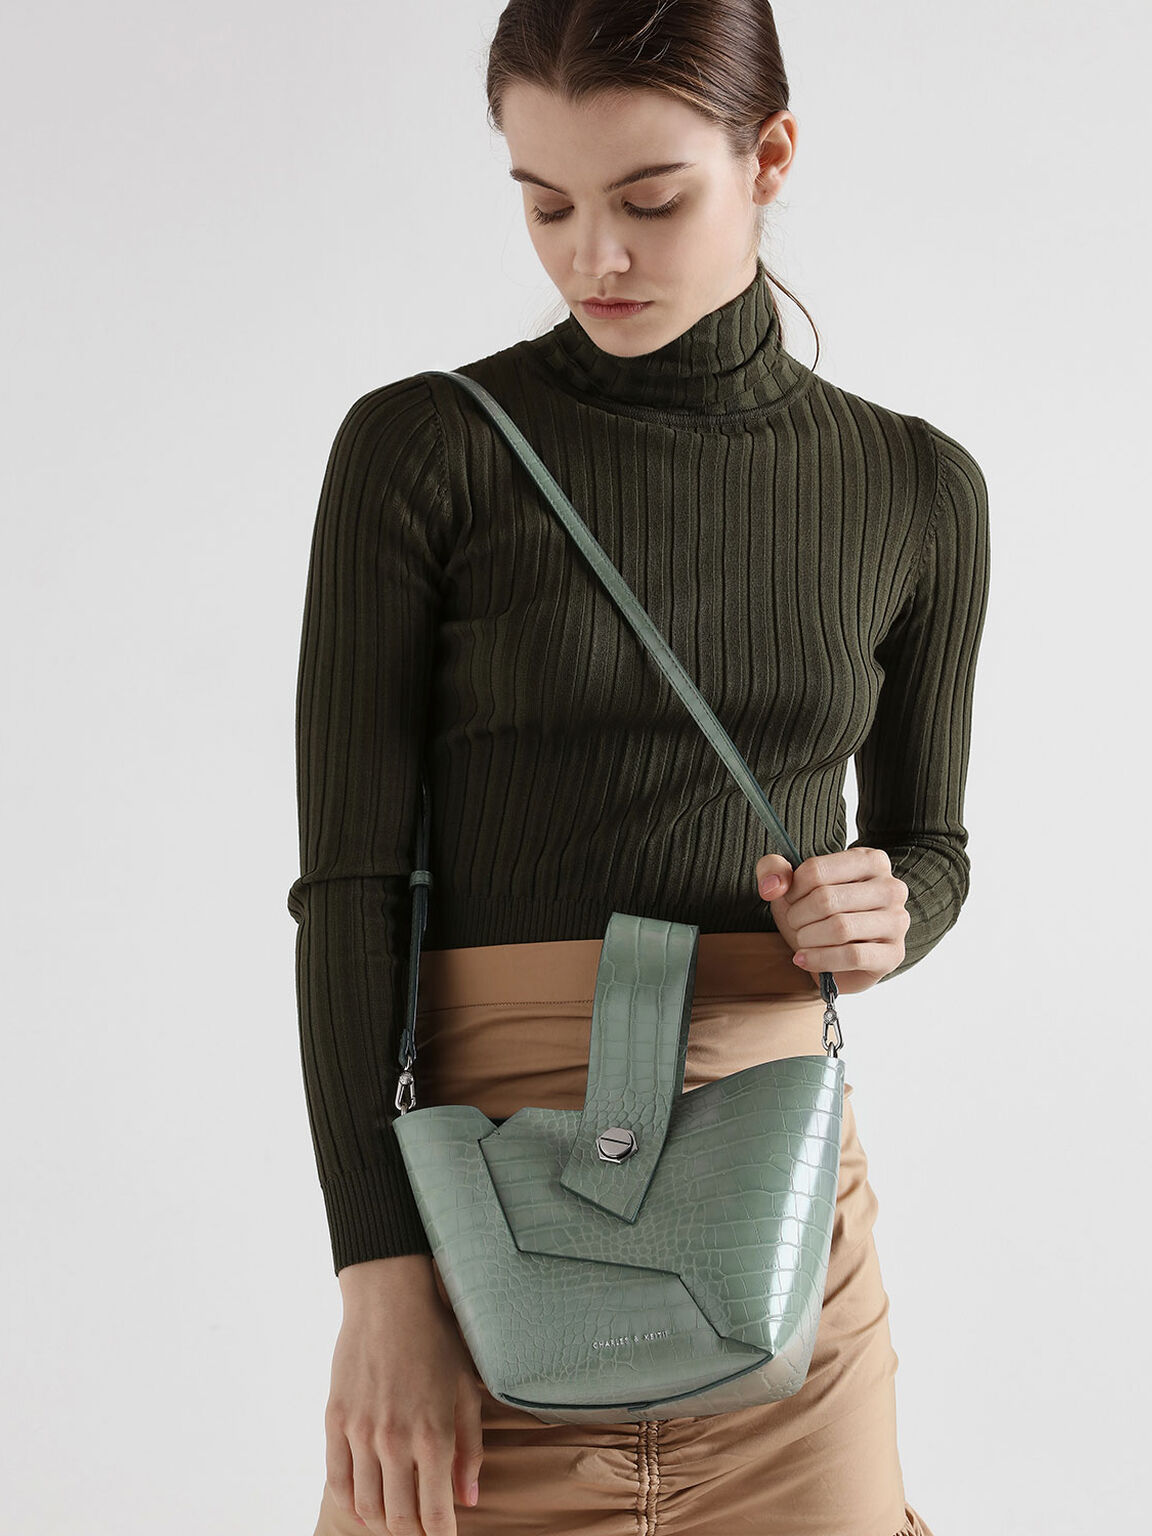 Croc-Effect Wristlet Handle Bucket Bag, Sage Green, hi-res